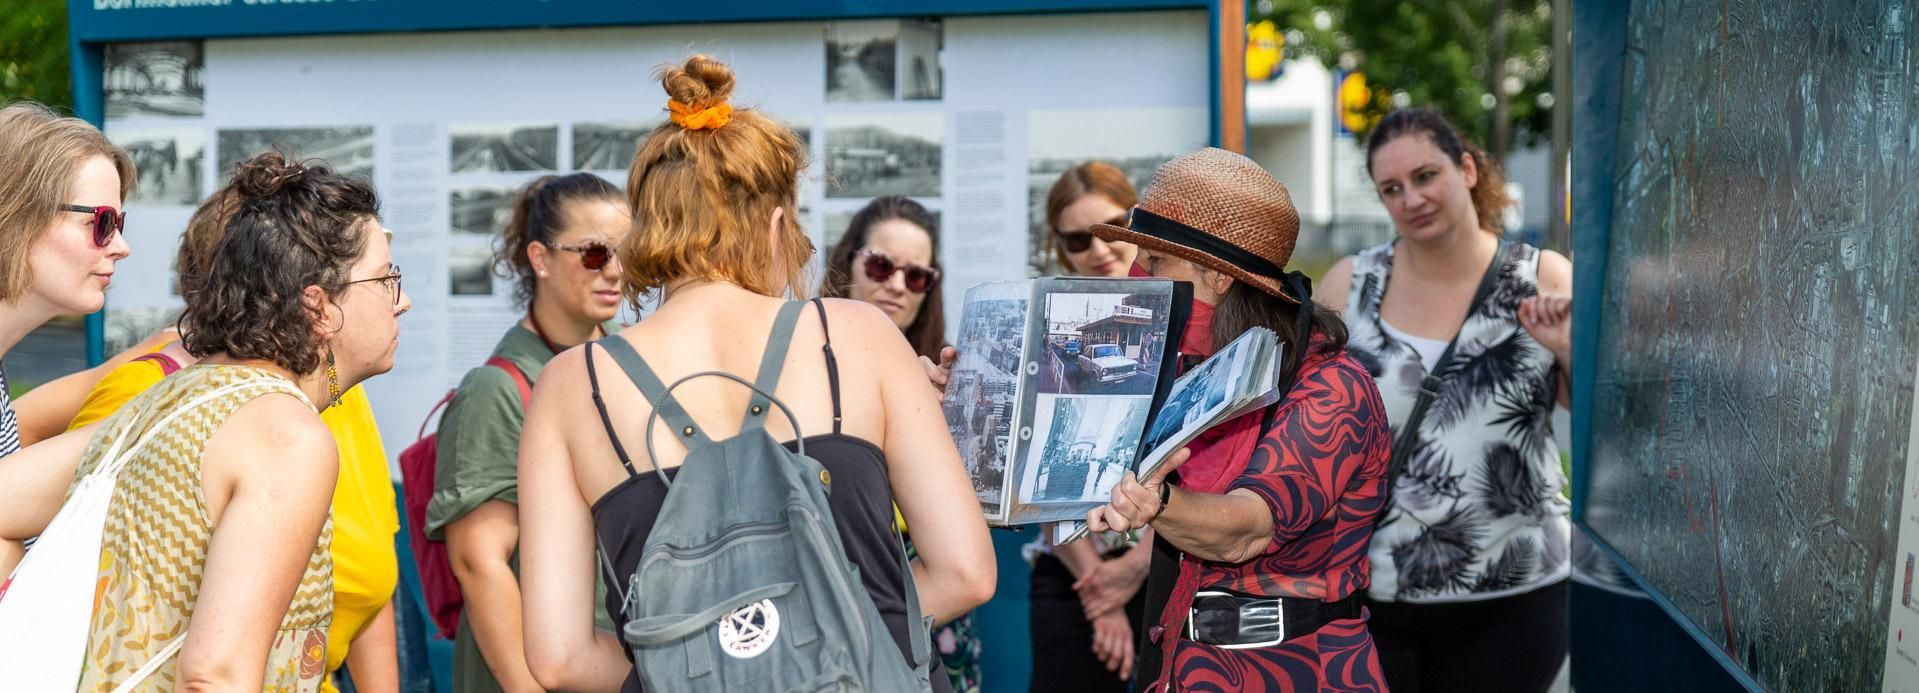 Berlin Wall: Small Group Guided Tour